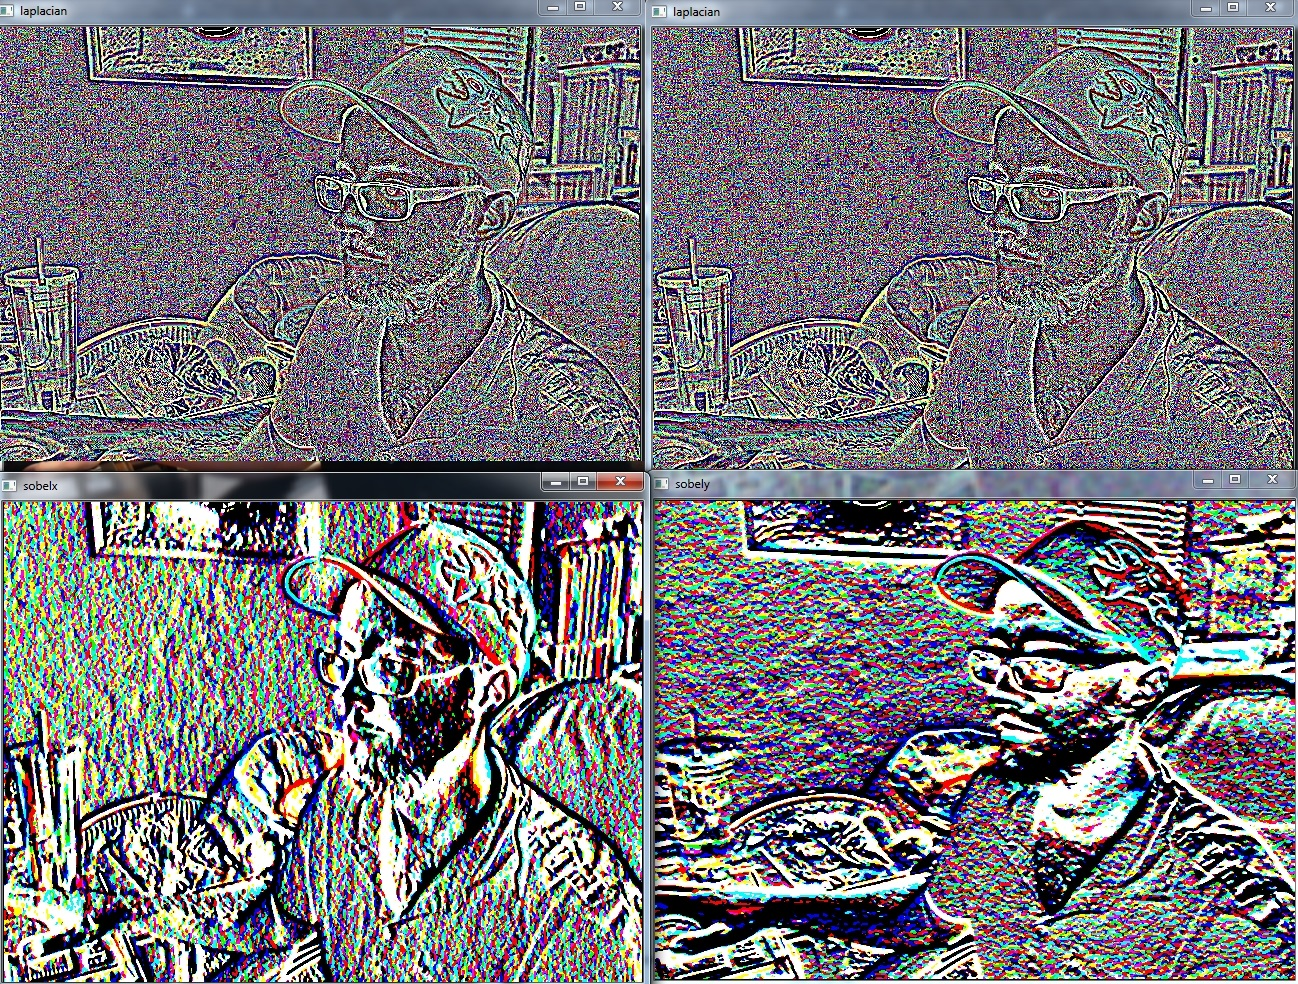 Canny Edge Detection and Gradients OpenCV Python Tutorial